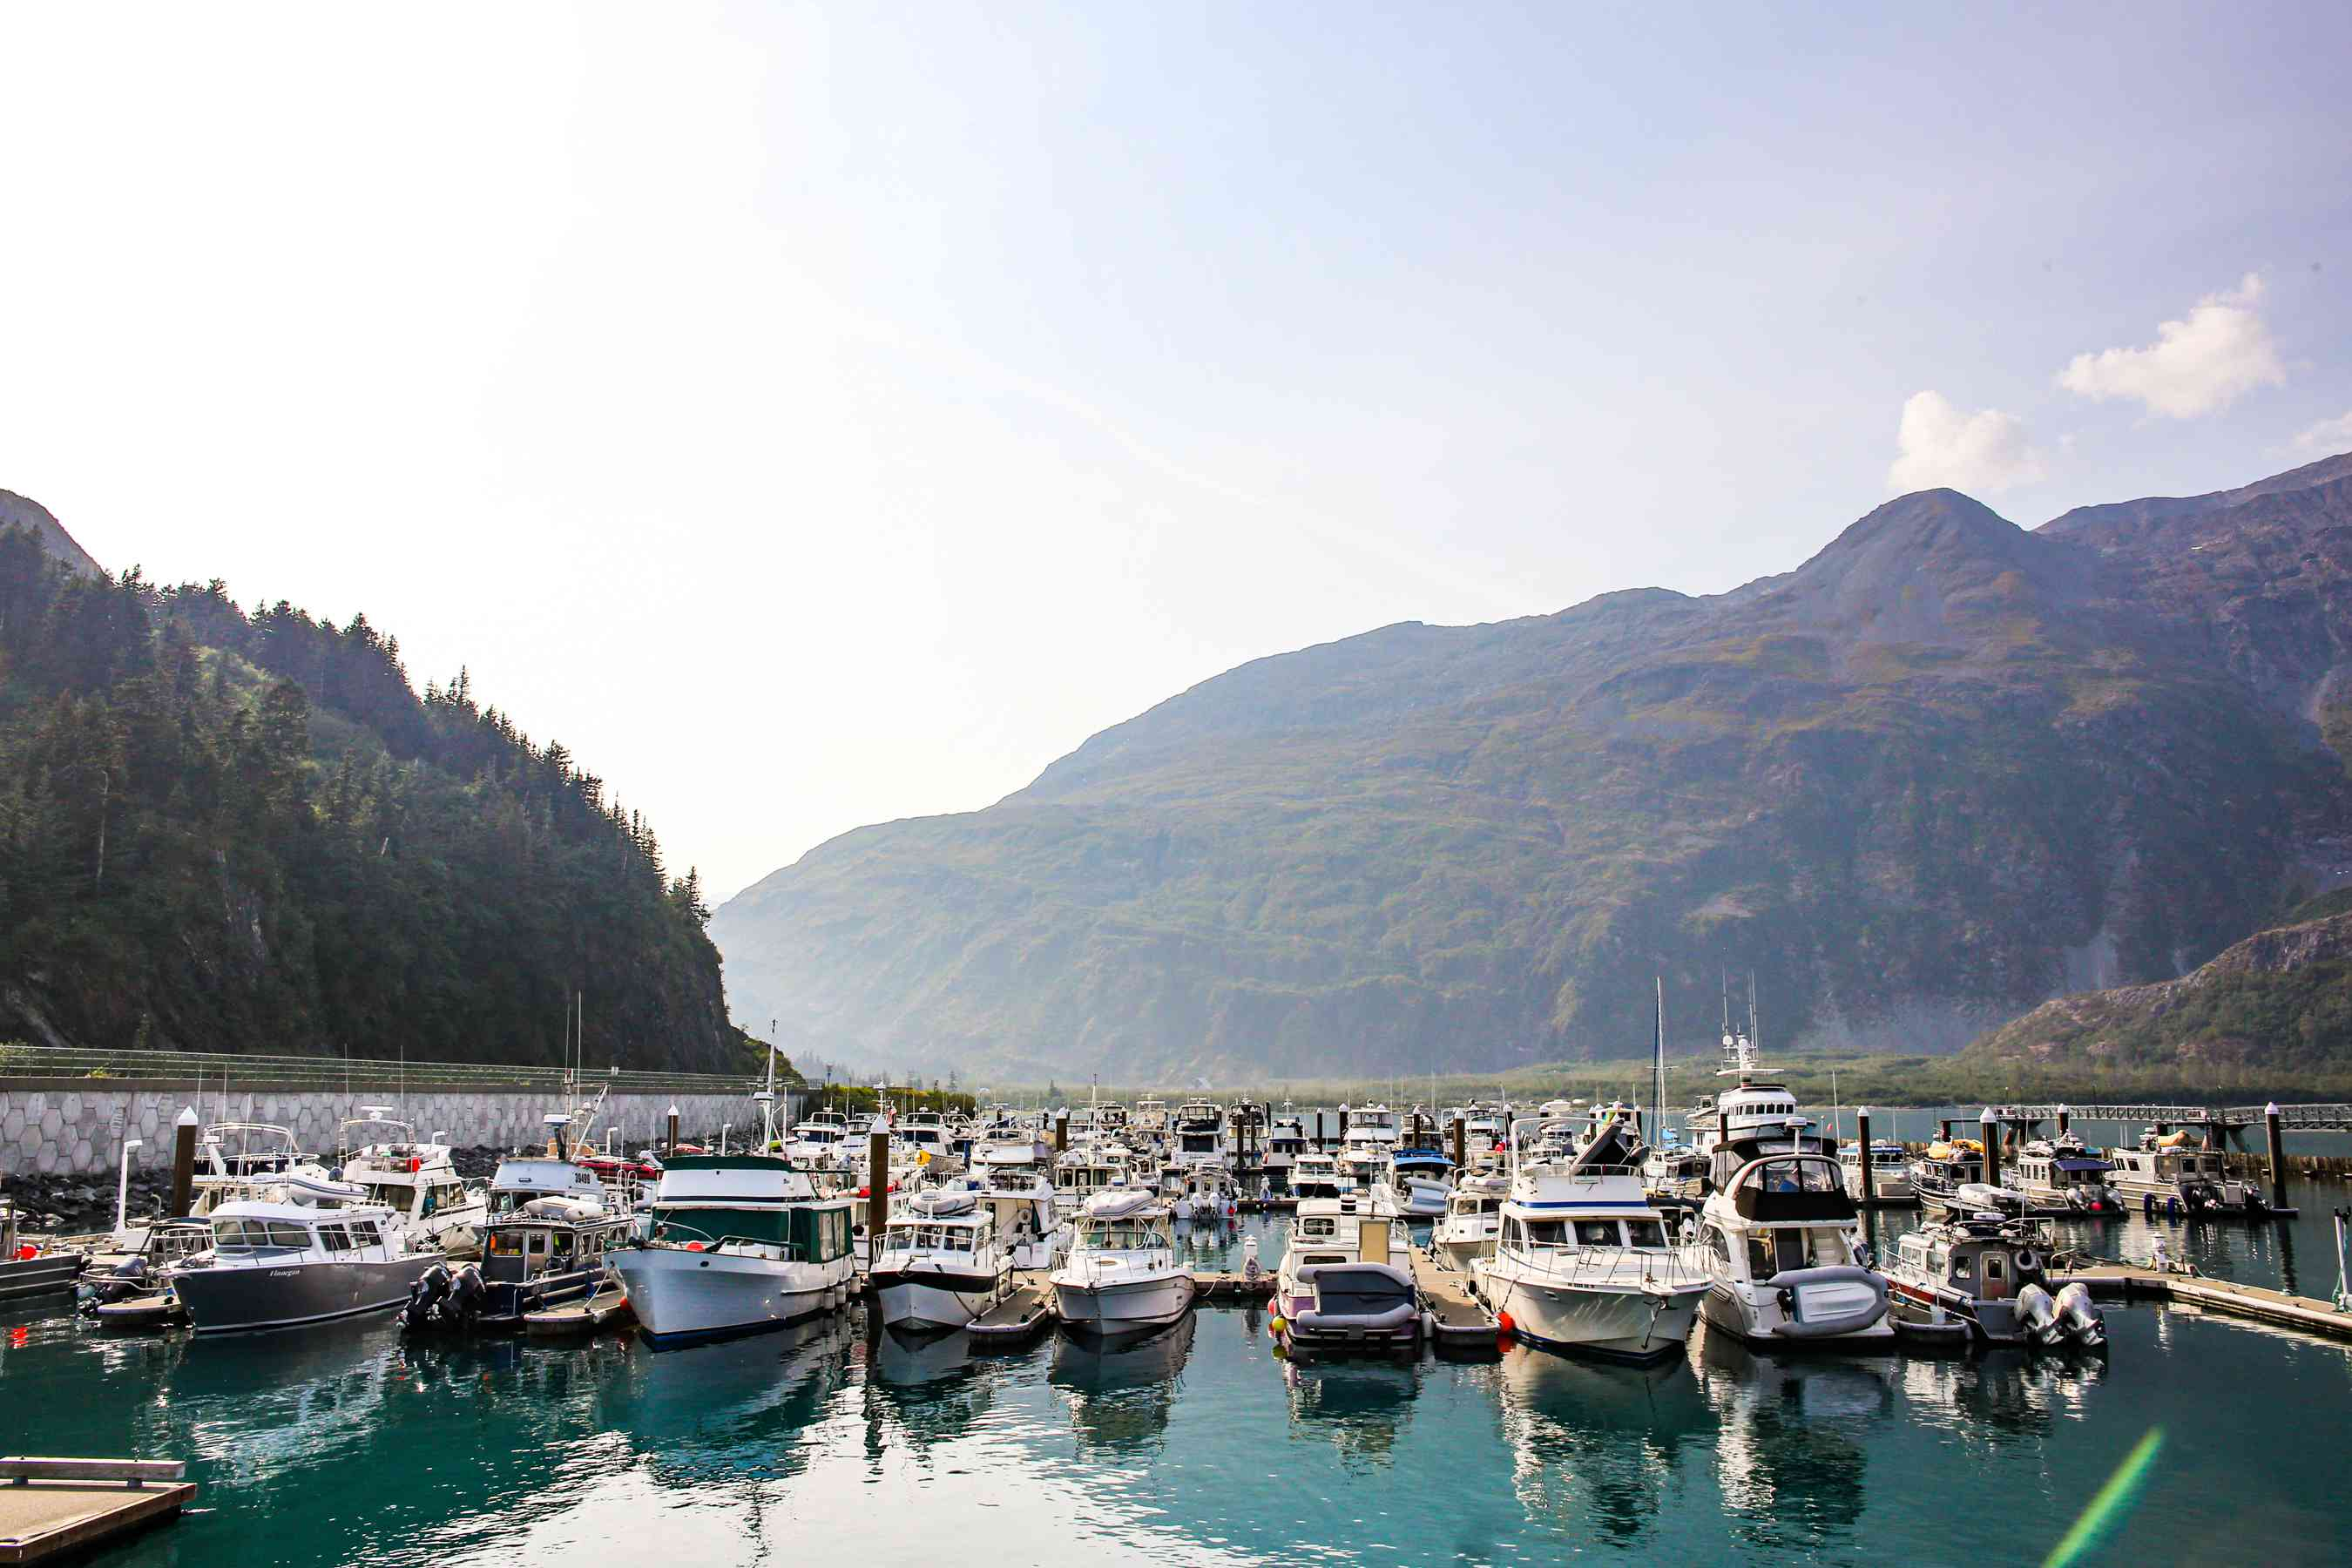 Boats docked in Whittier with mountains in the background